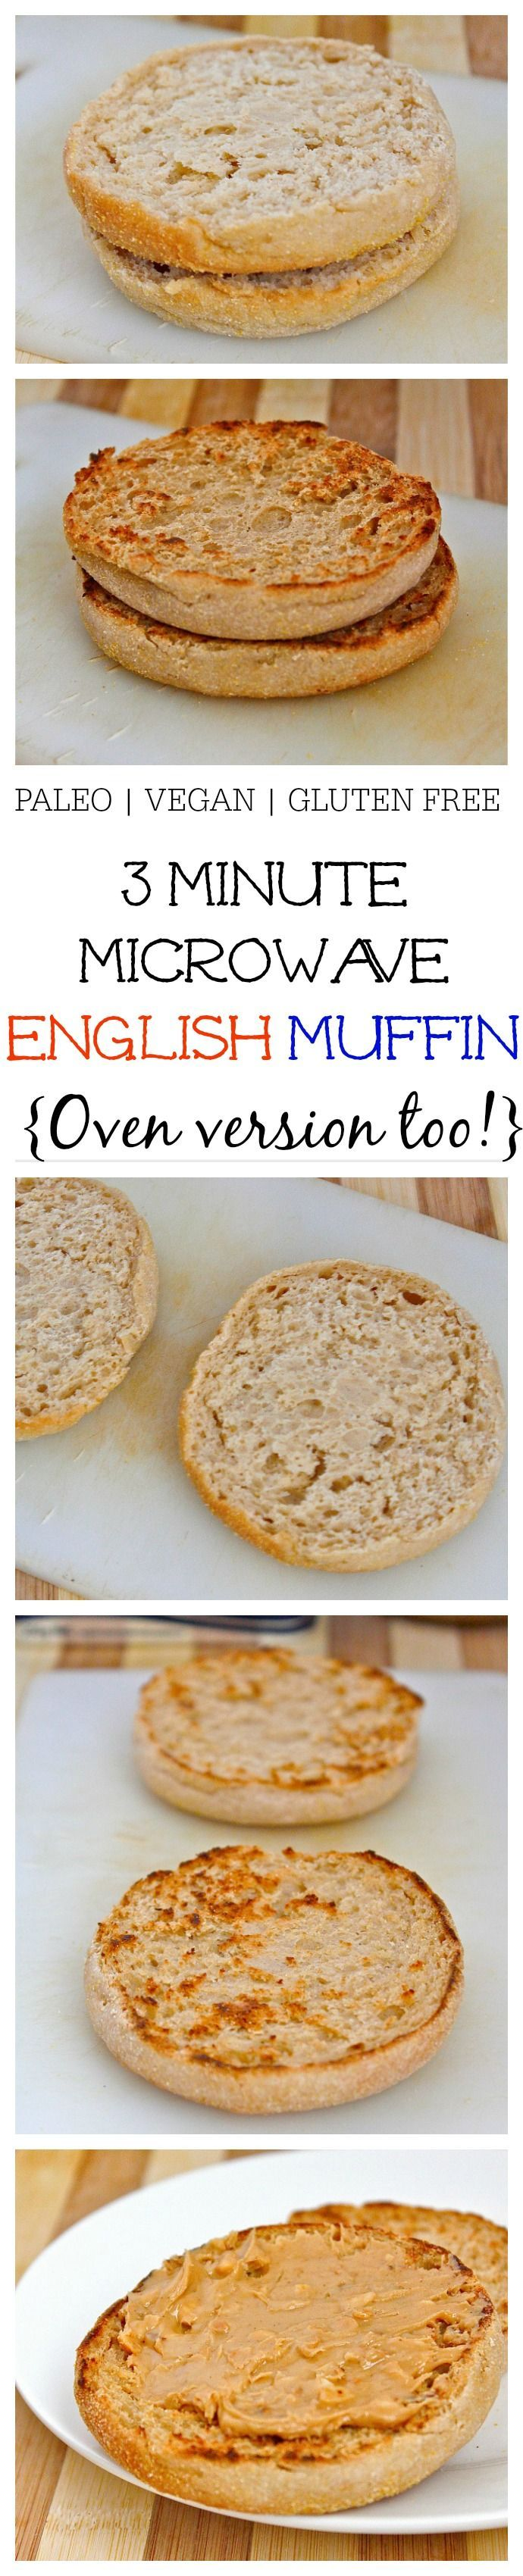 3 Minute Microwave English Muffin (Paleo, Vegan AND gluten free!)- So easy, I've completely stopped buying bread- There's an oven version too so I can bulk cook!